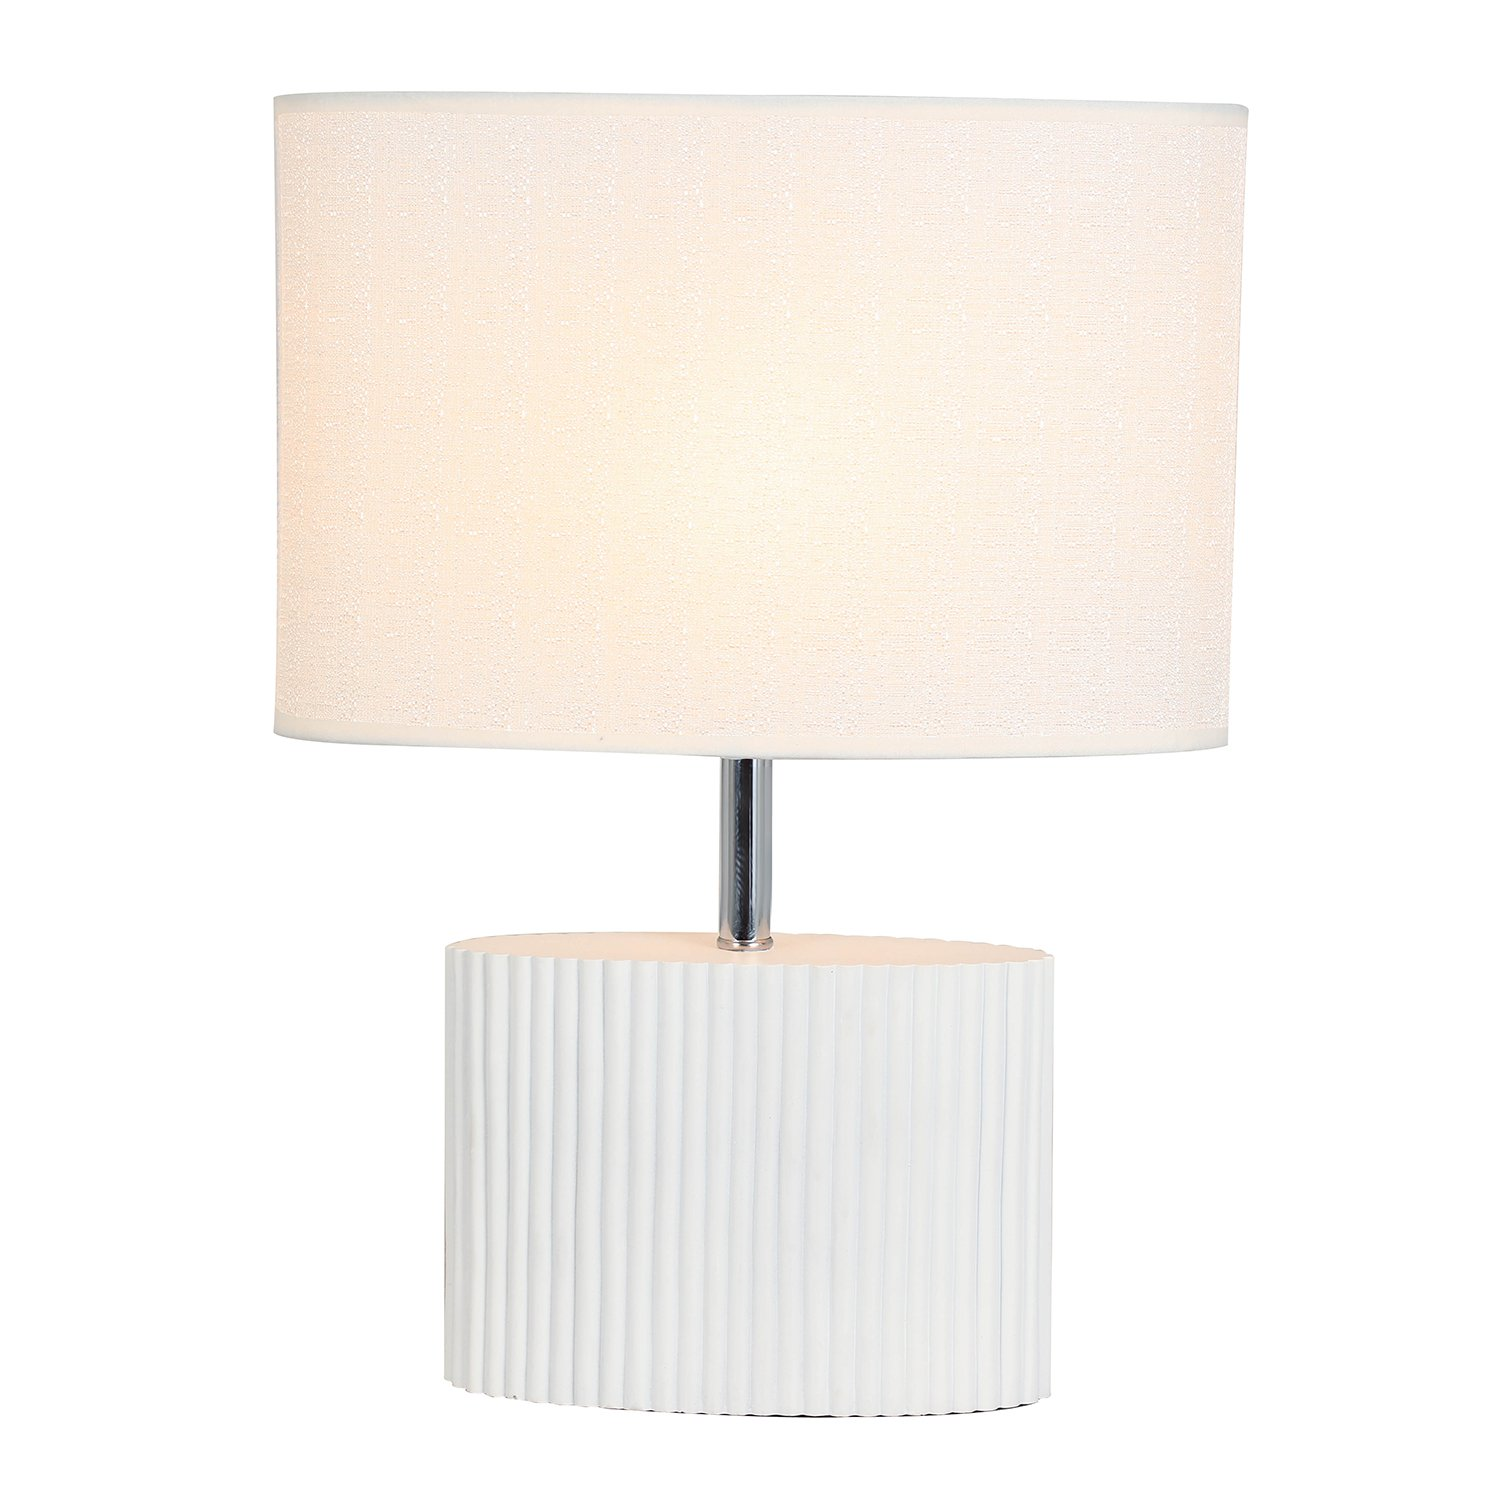 Decorative Table Lamp, HOMPEN Bedside Desk Lamp with White Resin Base and Fabric Shade, Night Light for Living Room, Bedroom, Dresser, College Dorm-White